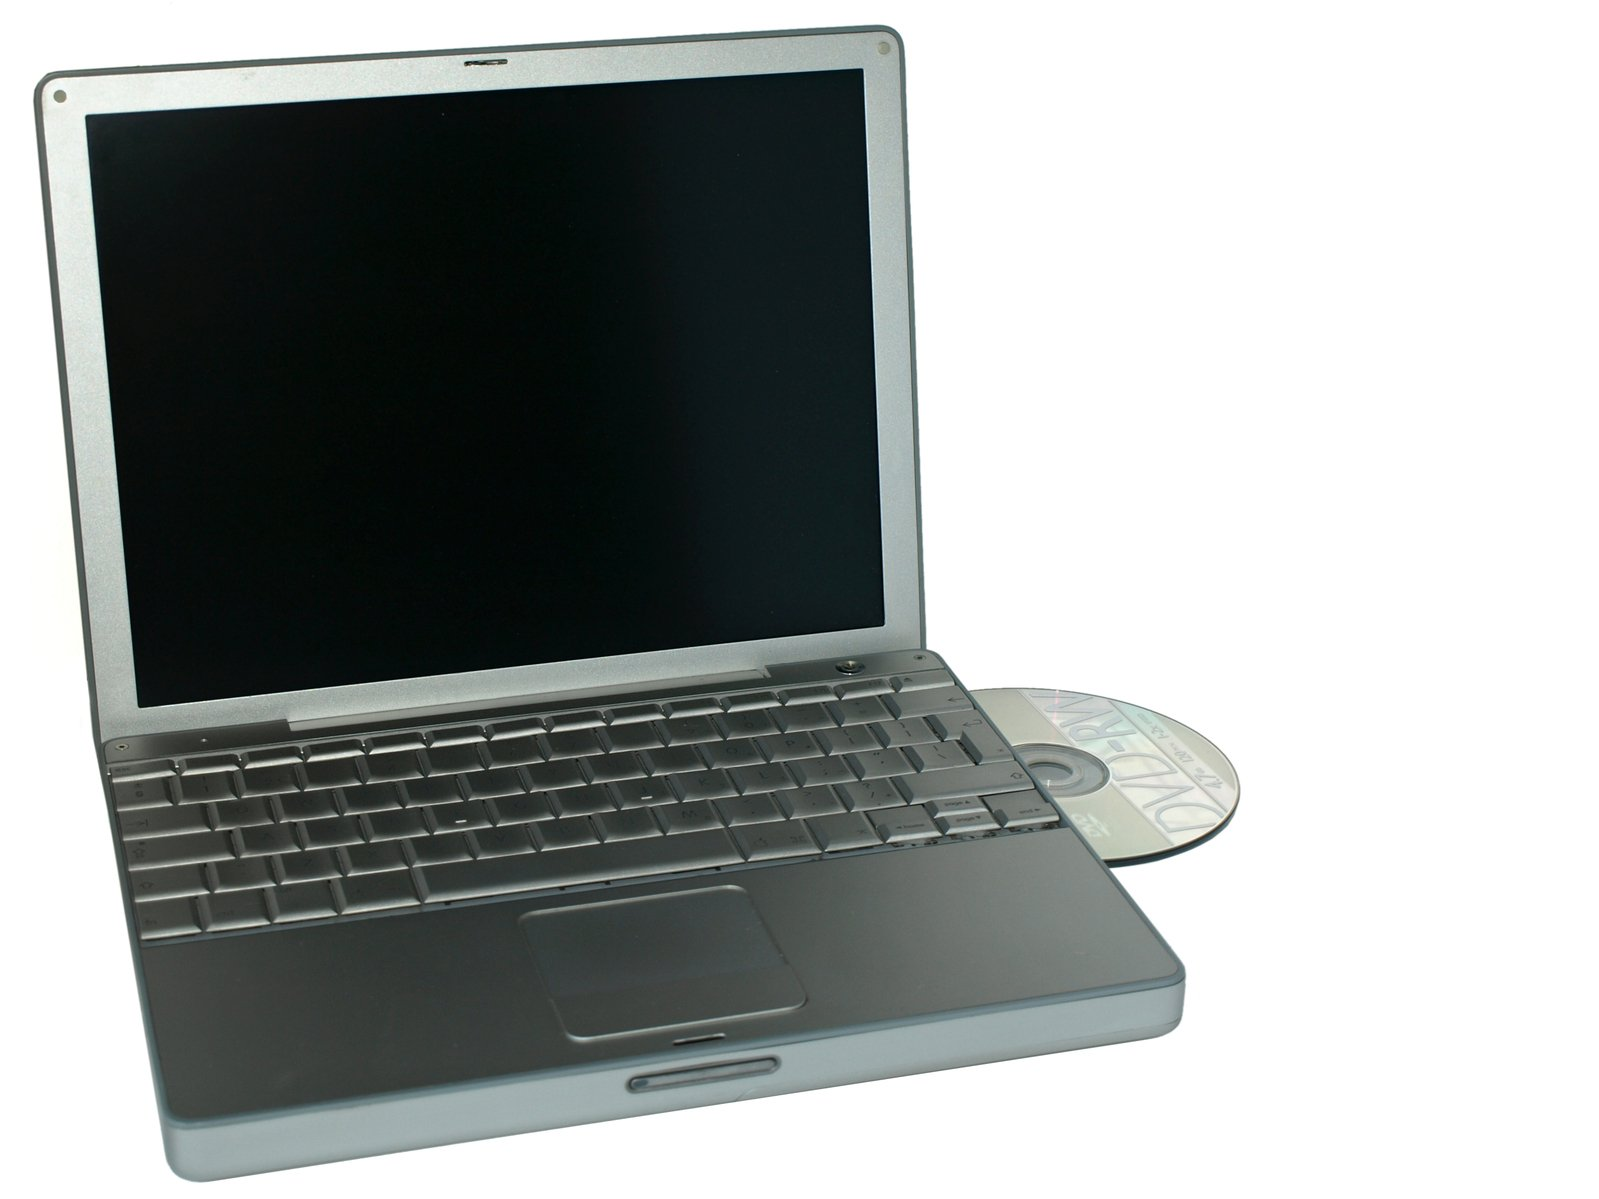 Laptop with CD